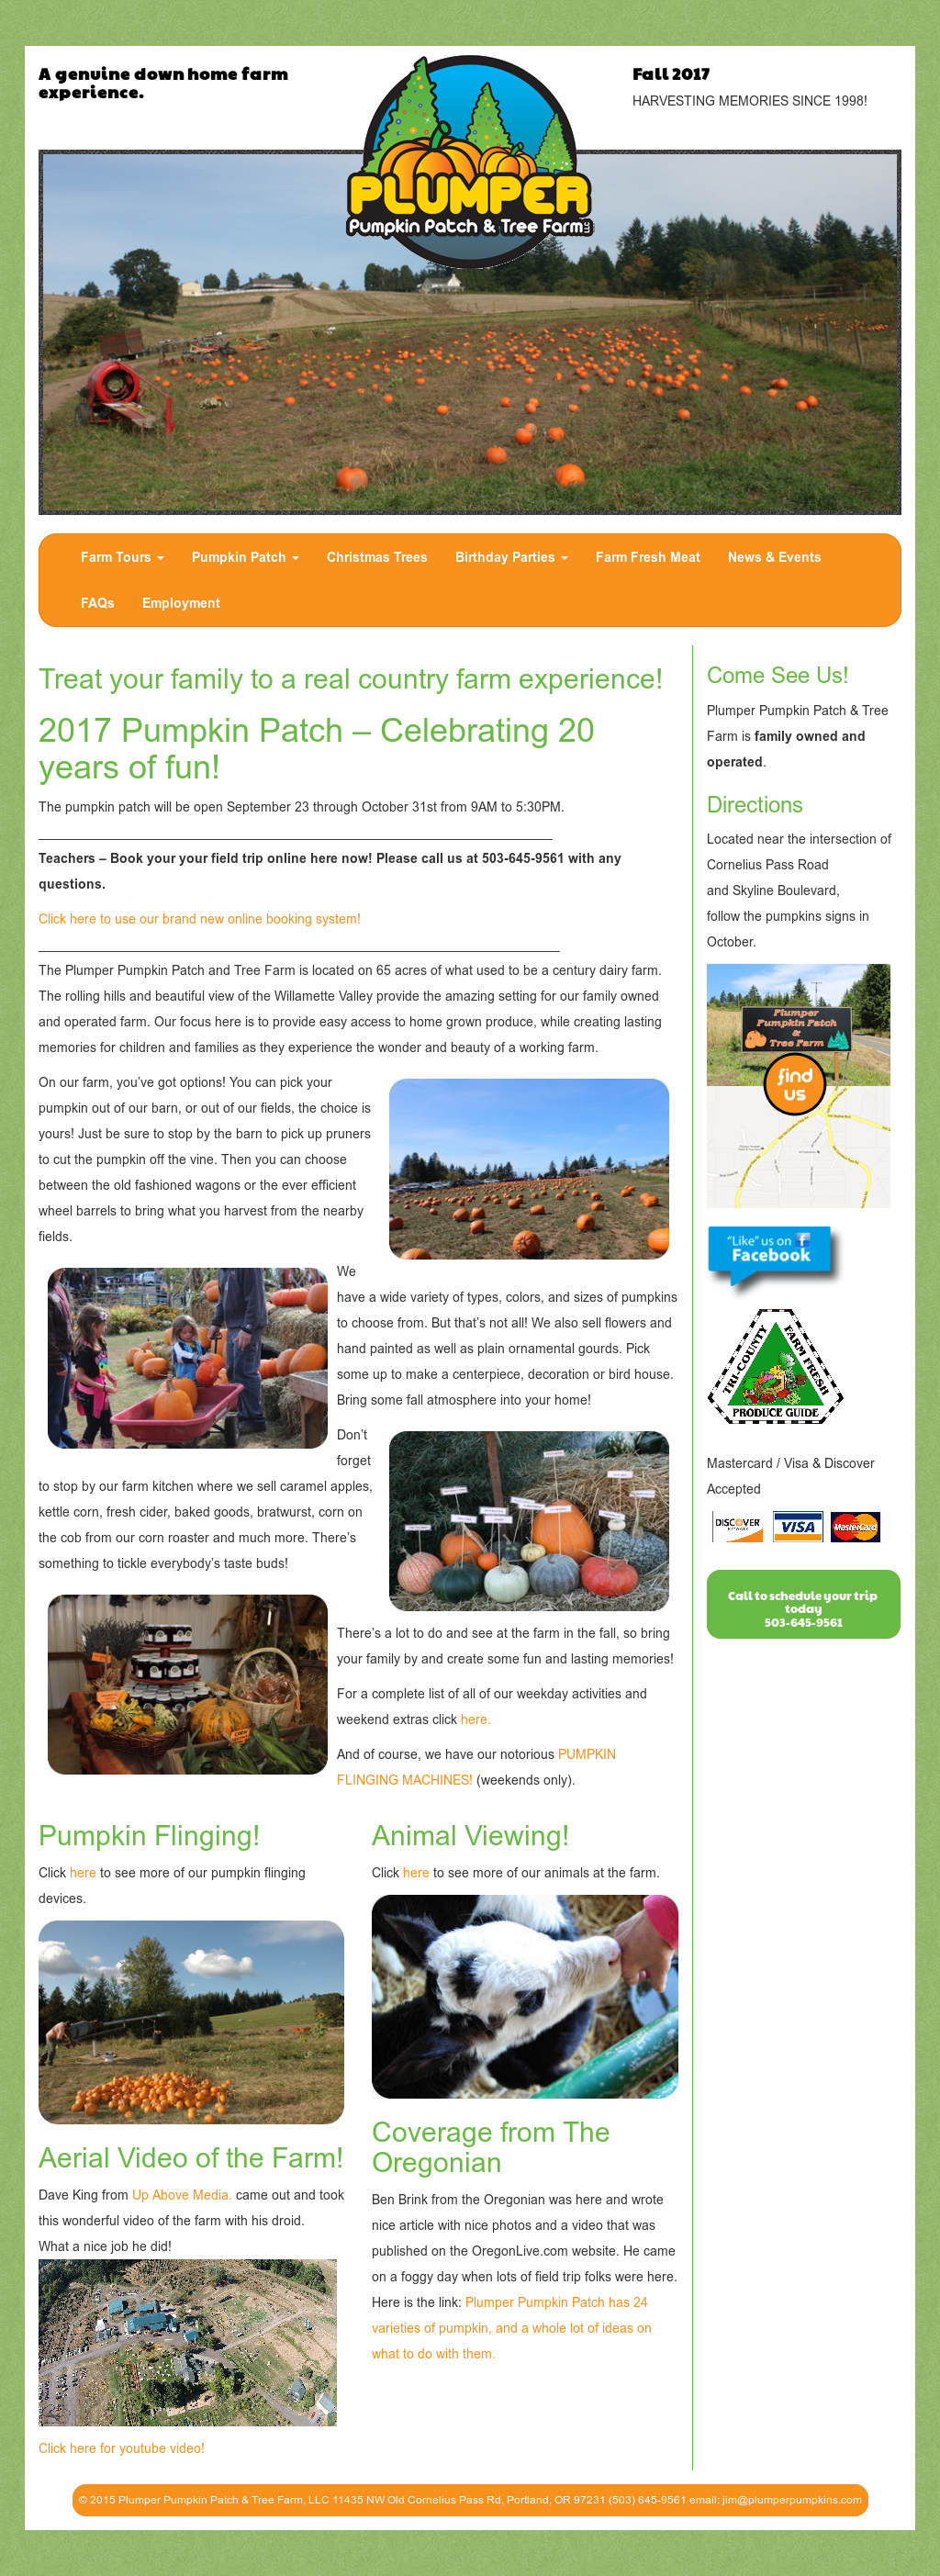 Plumper Pumpkin Patch Tree Farm S Competitors Revenue Number Of Employees Funding Acquisitions News Owler Company Profile